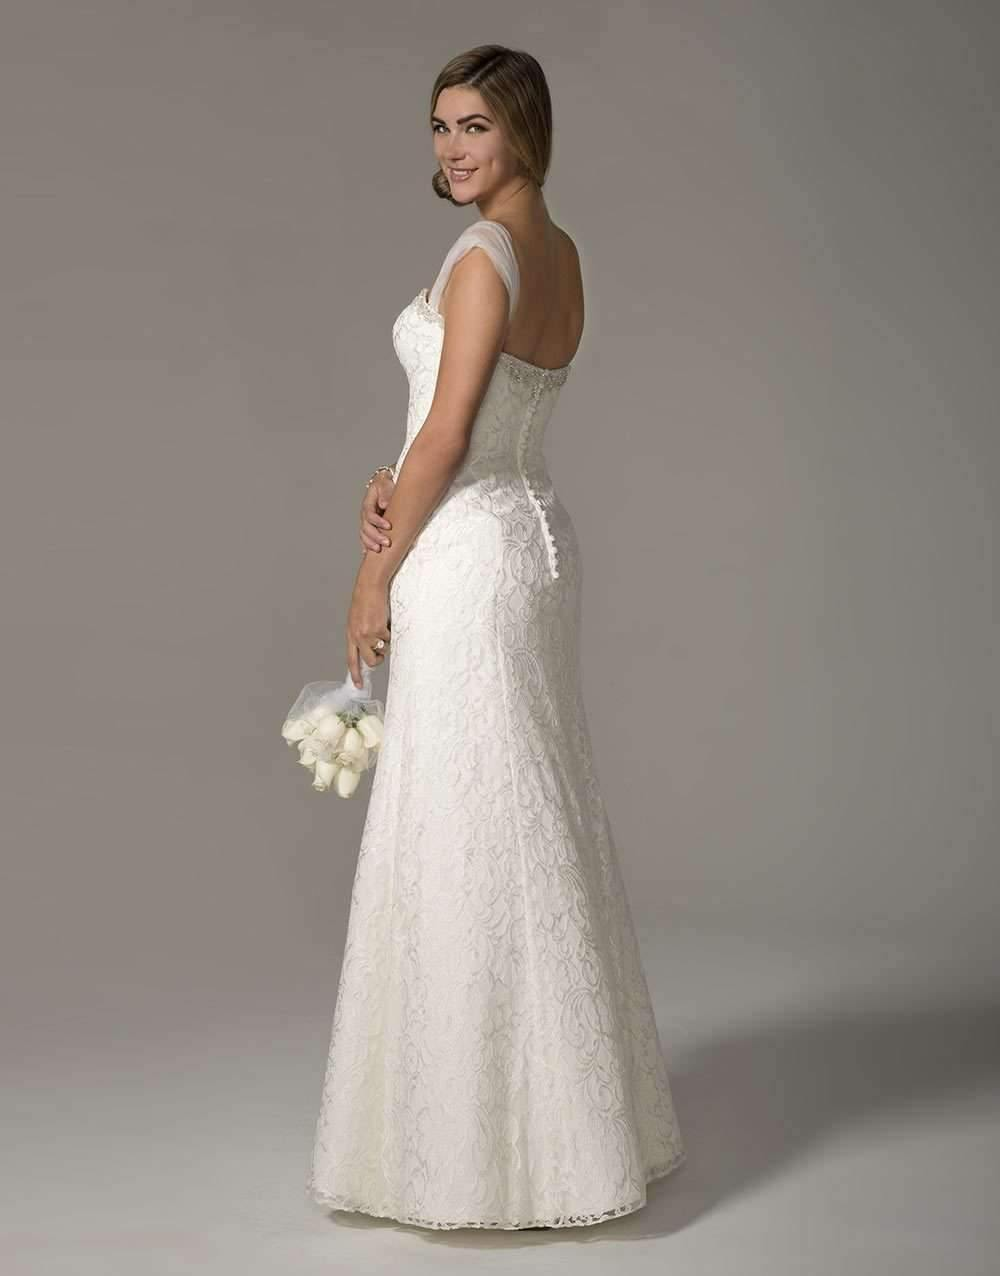 UK18 - Estelle - SALE - Adore Bridal and Occasion Wear